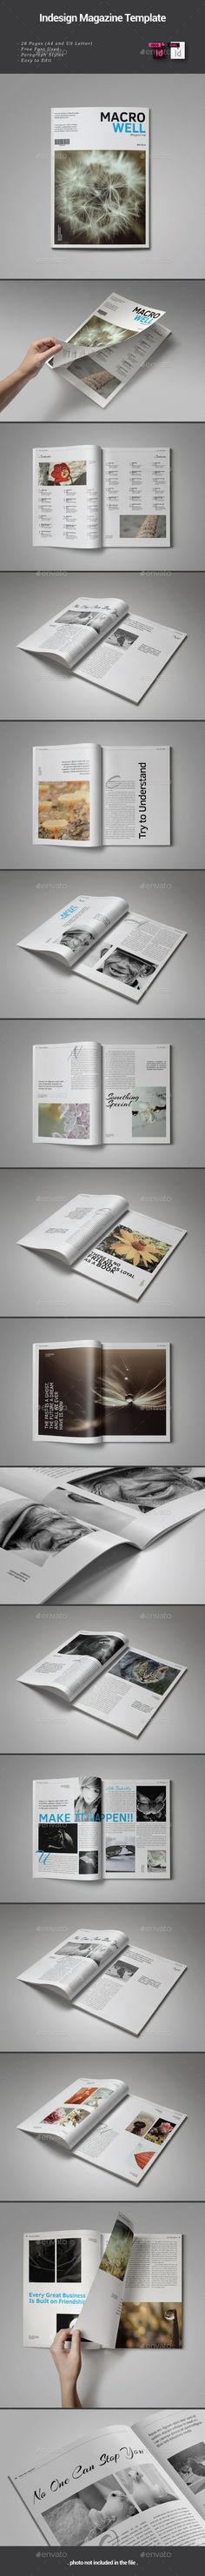 Macro Well Magazine Template by thirtypath FEATURES :28 pages (A4 & US Letter) Paragraph Style Free Font Used Print Ready with Bleed Easy to Edit (Color, Text, Image) Differ